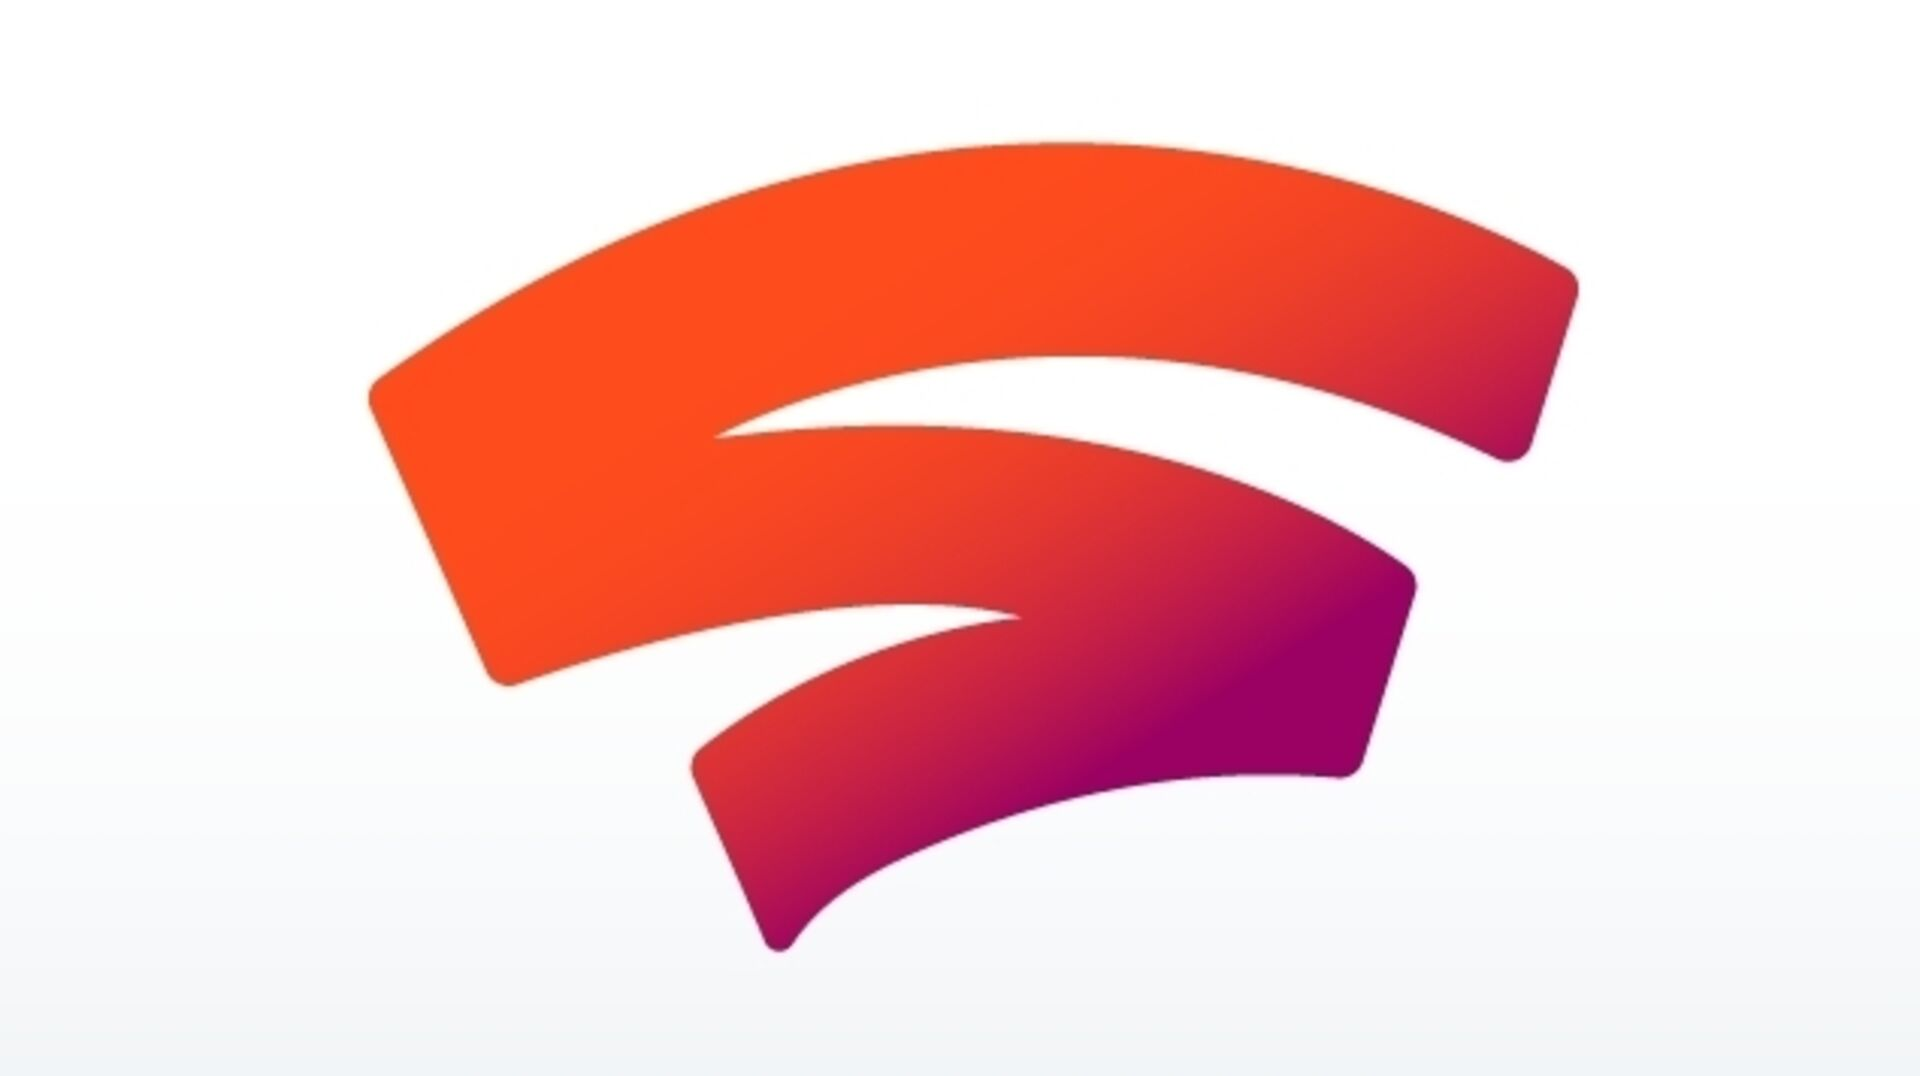 Google isn't waiting until E3 to reveal more Stadia details